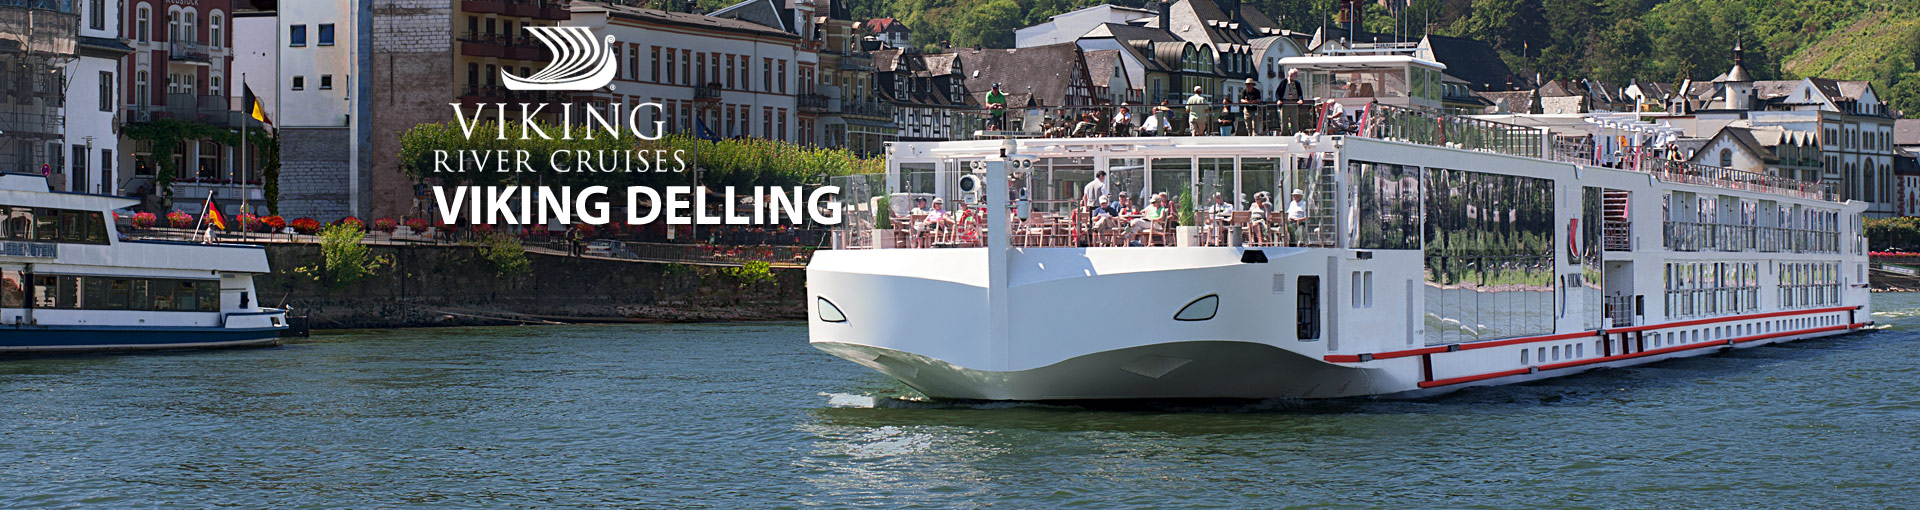 Viking Rivers Viking Delling river cruise ship